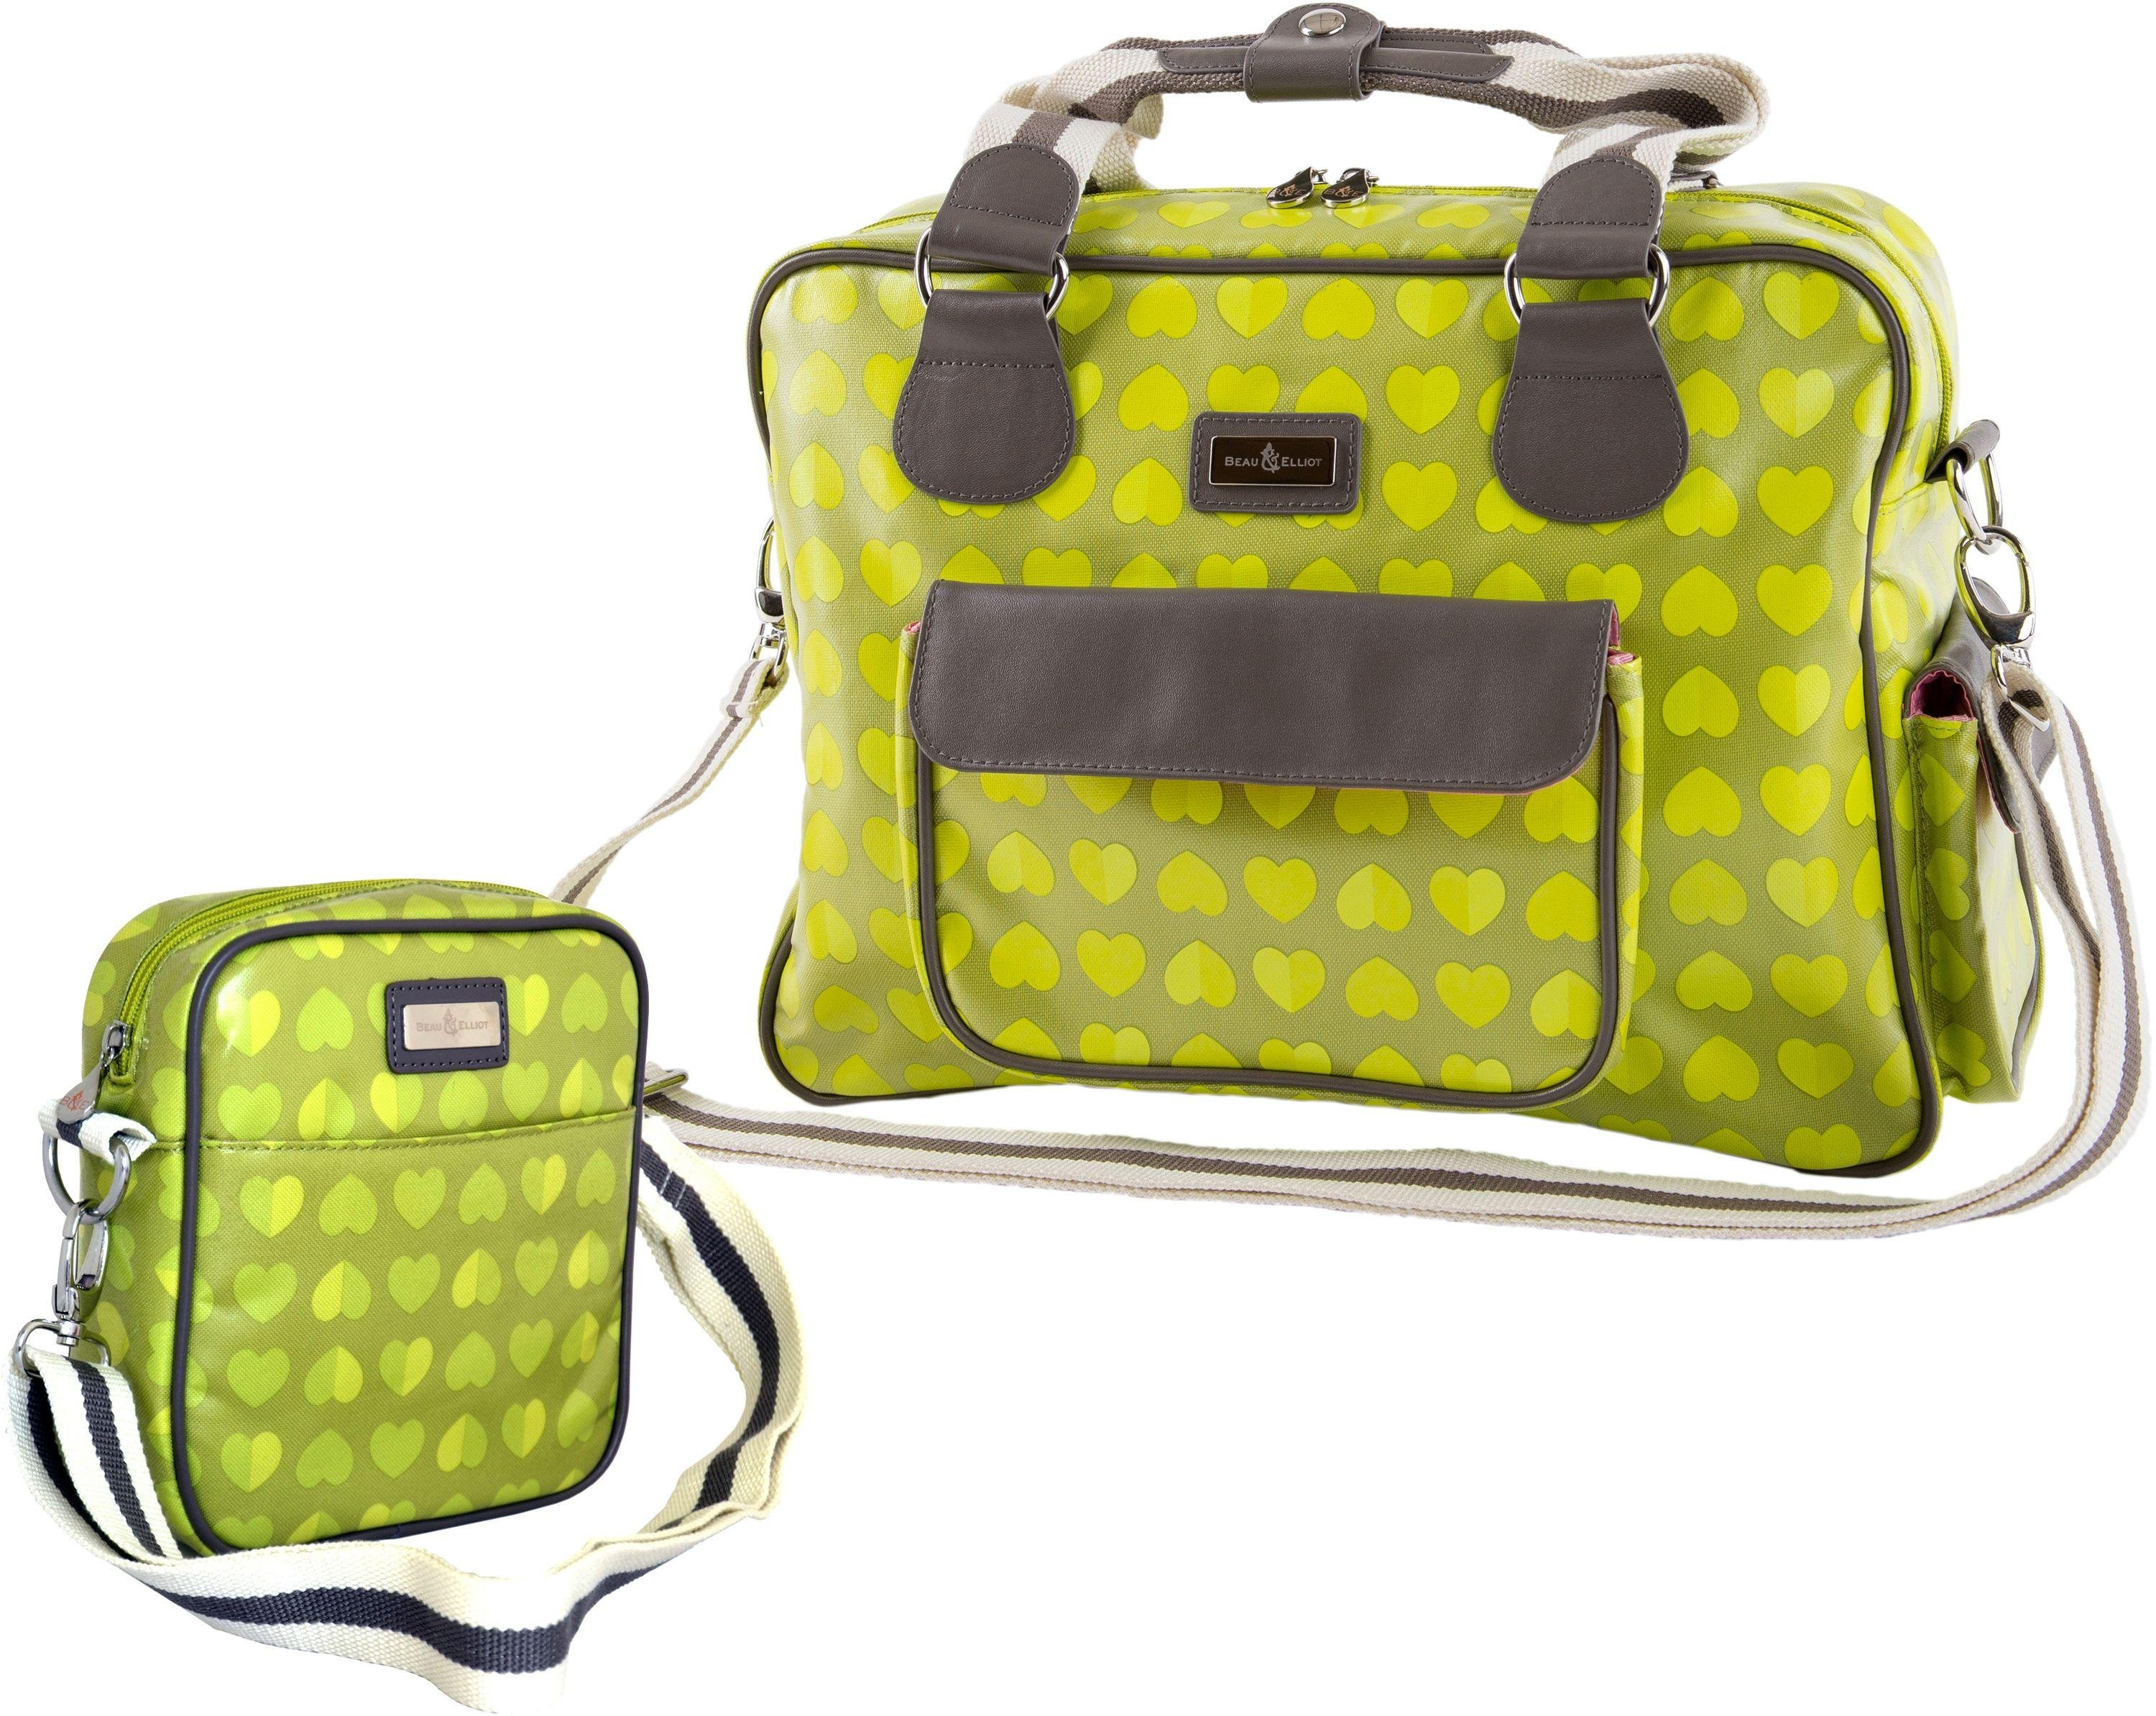 Image of Beau and Elliot Confetti Change Bag and Bottle Bag - Lime.